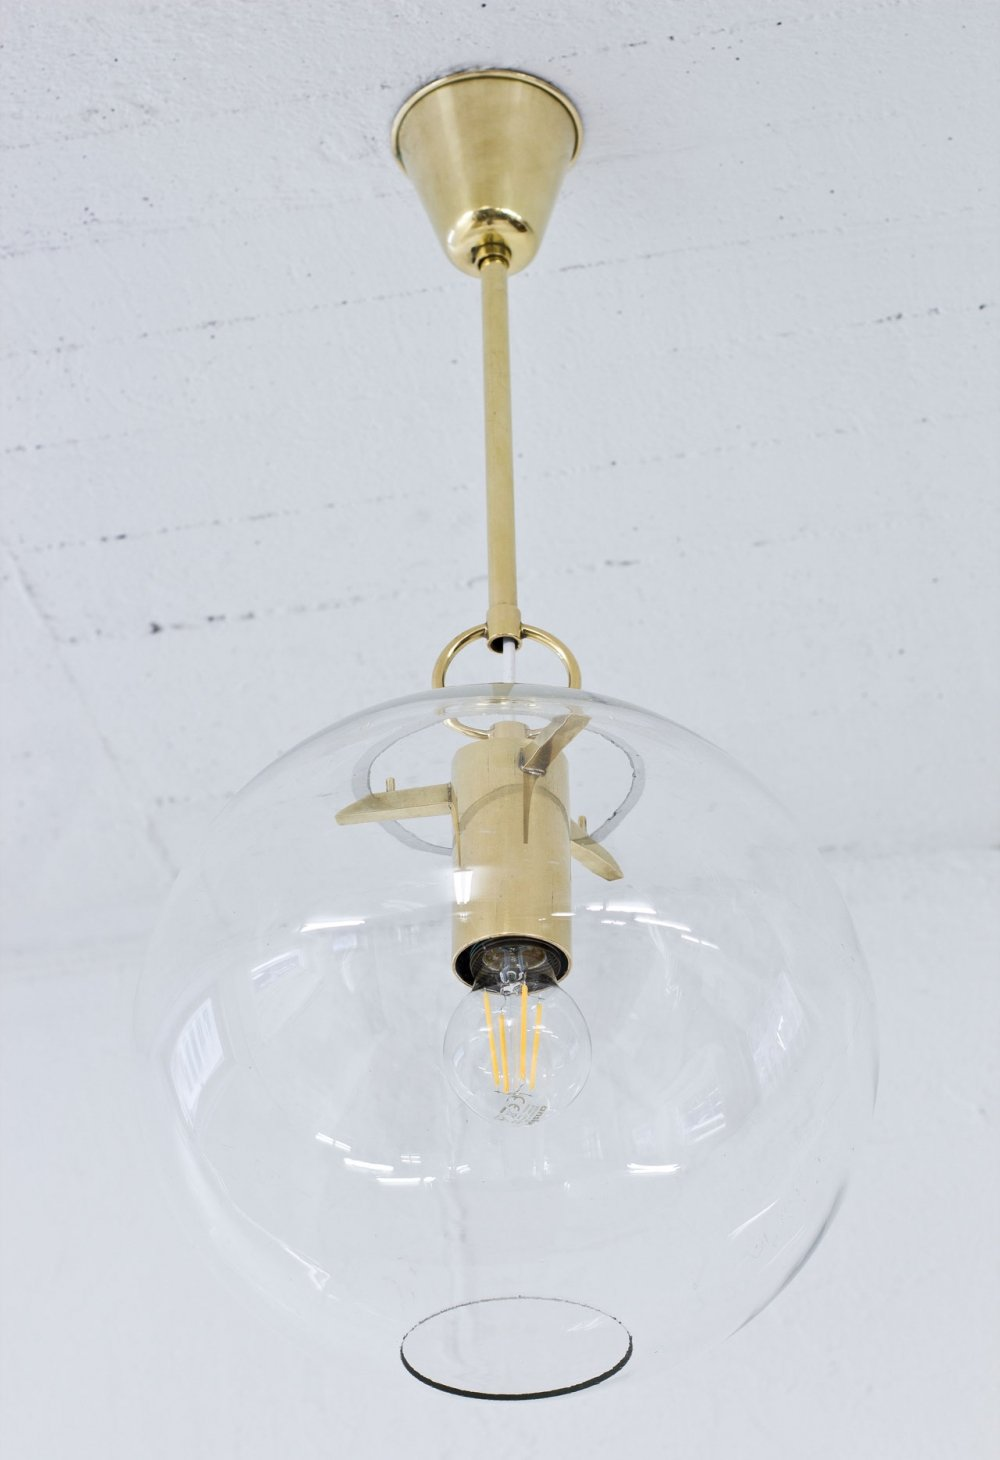 Glass & Brass Hanging Lamp by Hans-Agne Jakobsson, Sweden 1950s